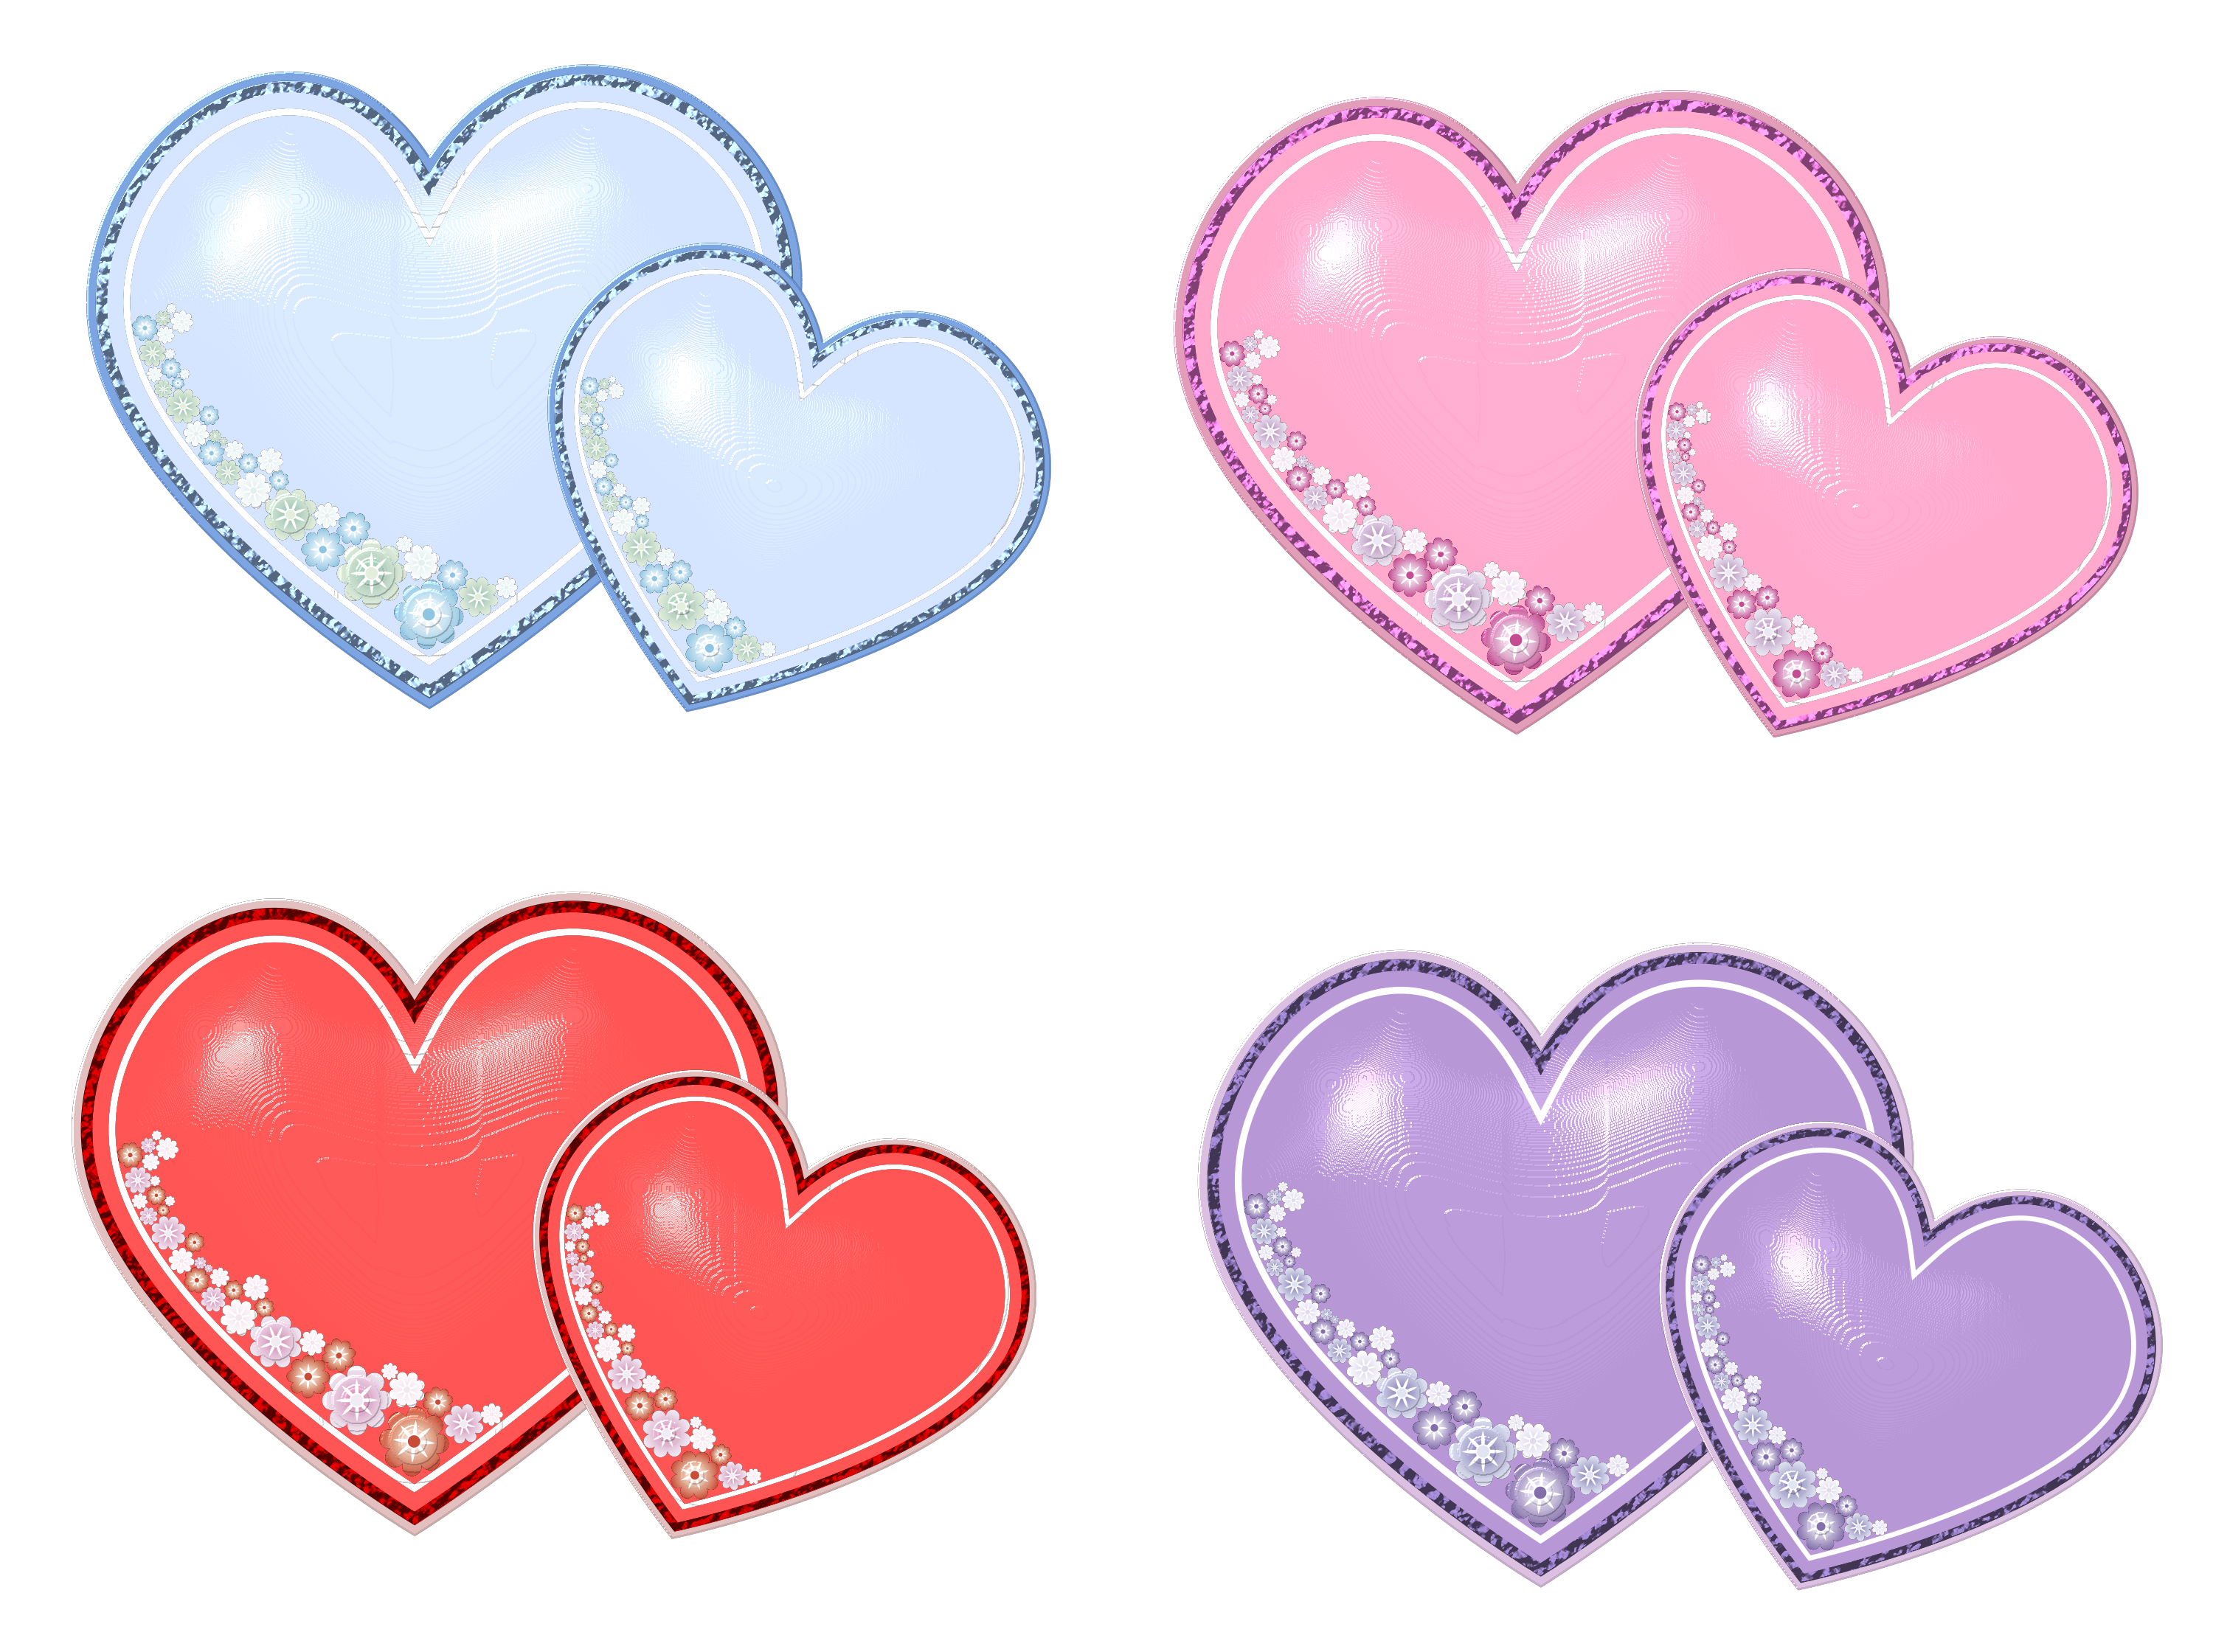 Uncategorized Corasones corazones decorativos 41 by creaciones jean on deviantart 40 jean